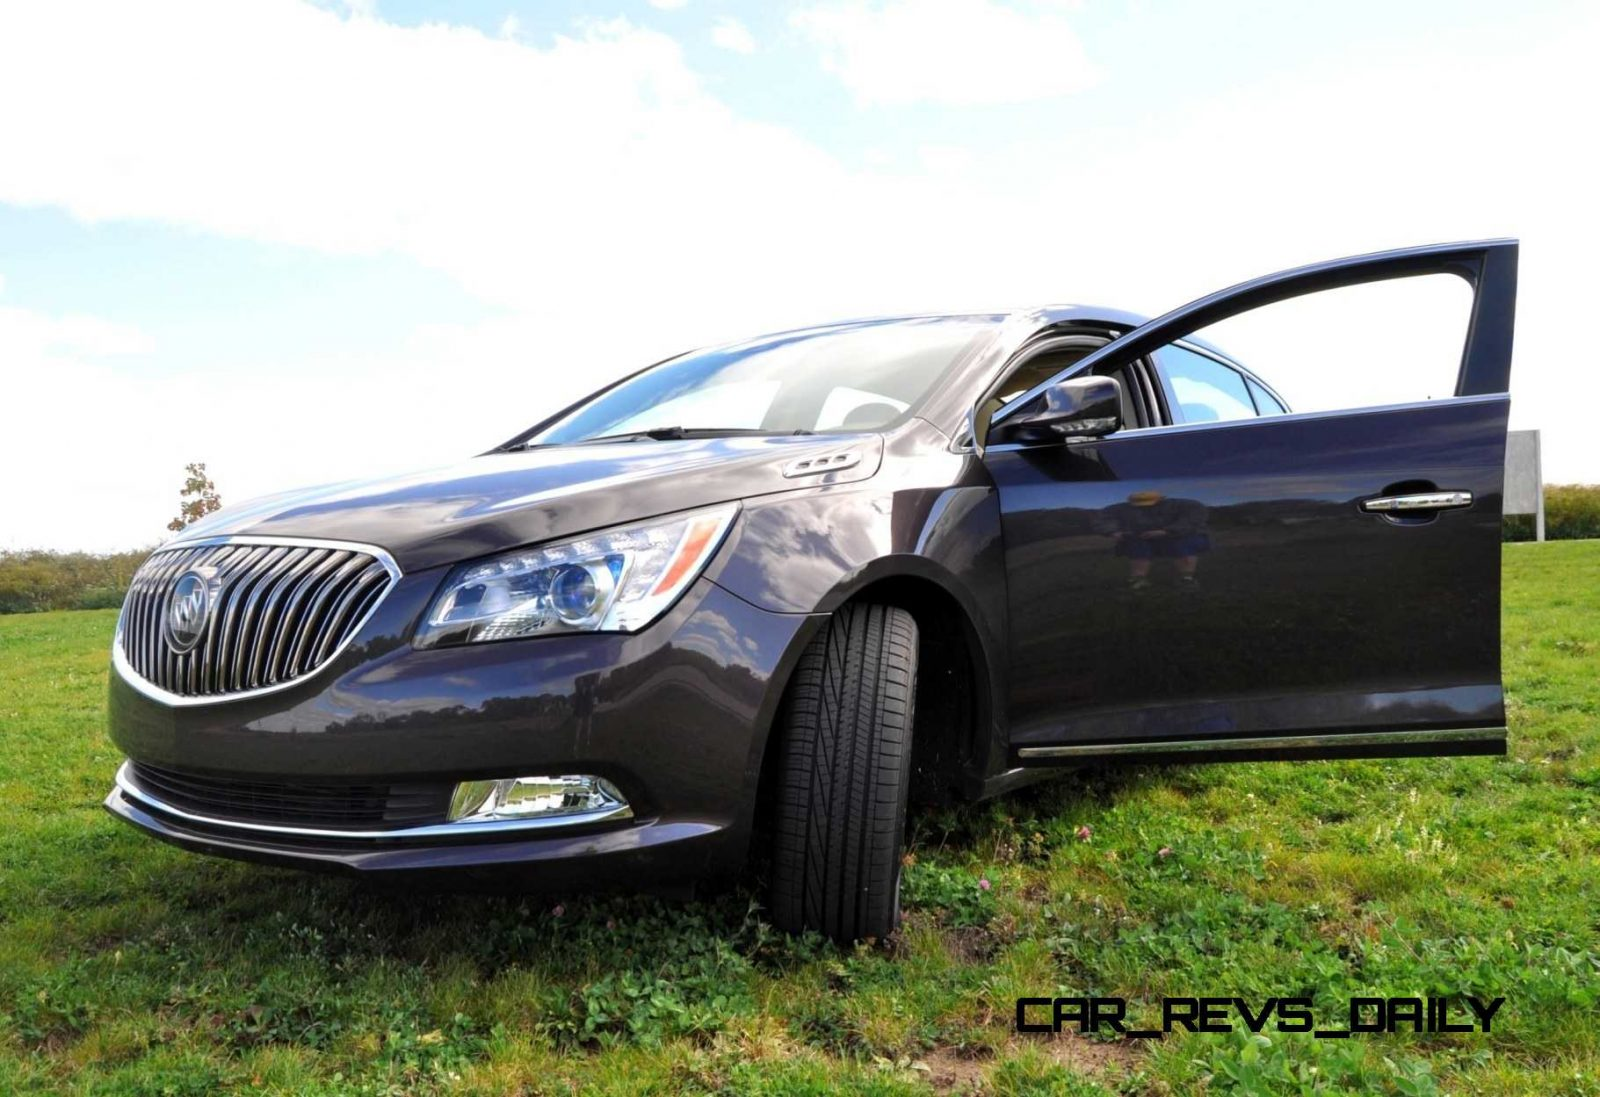 Driven Car Review - 2014 Buick LaCrosse Is Huge, Smooth and Silent5